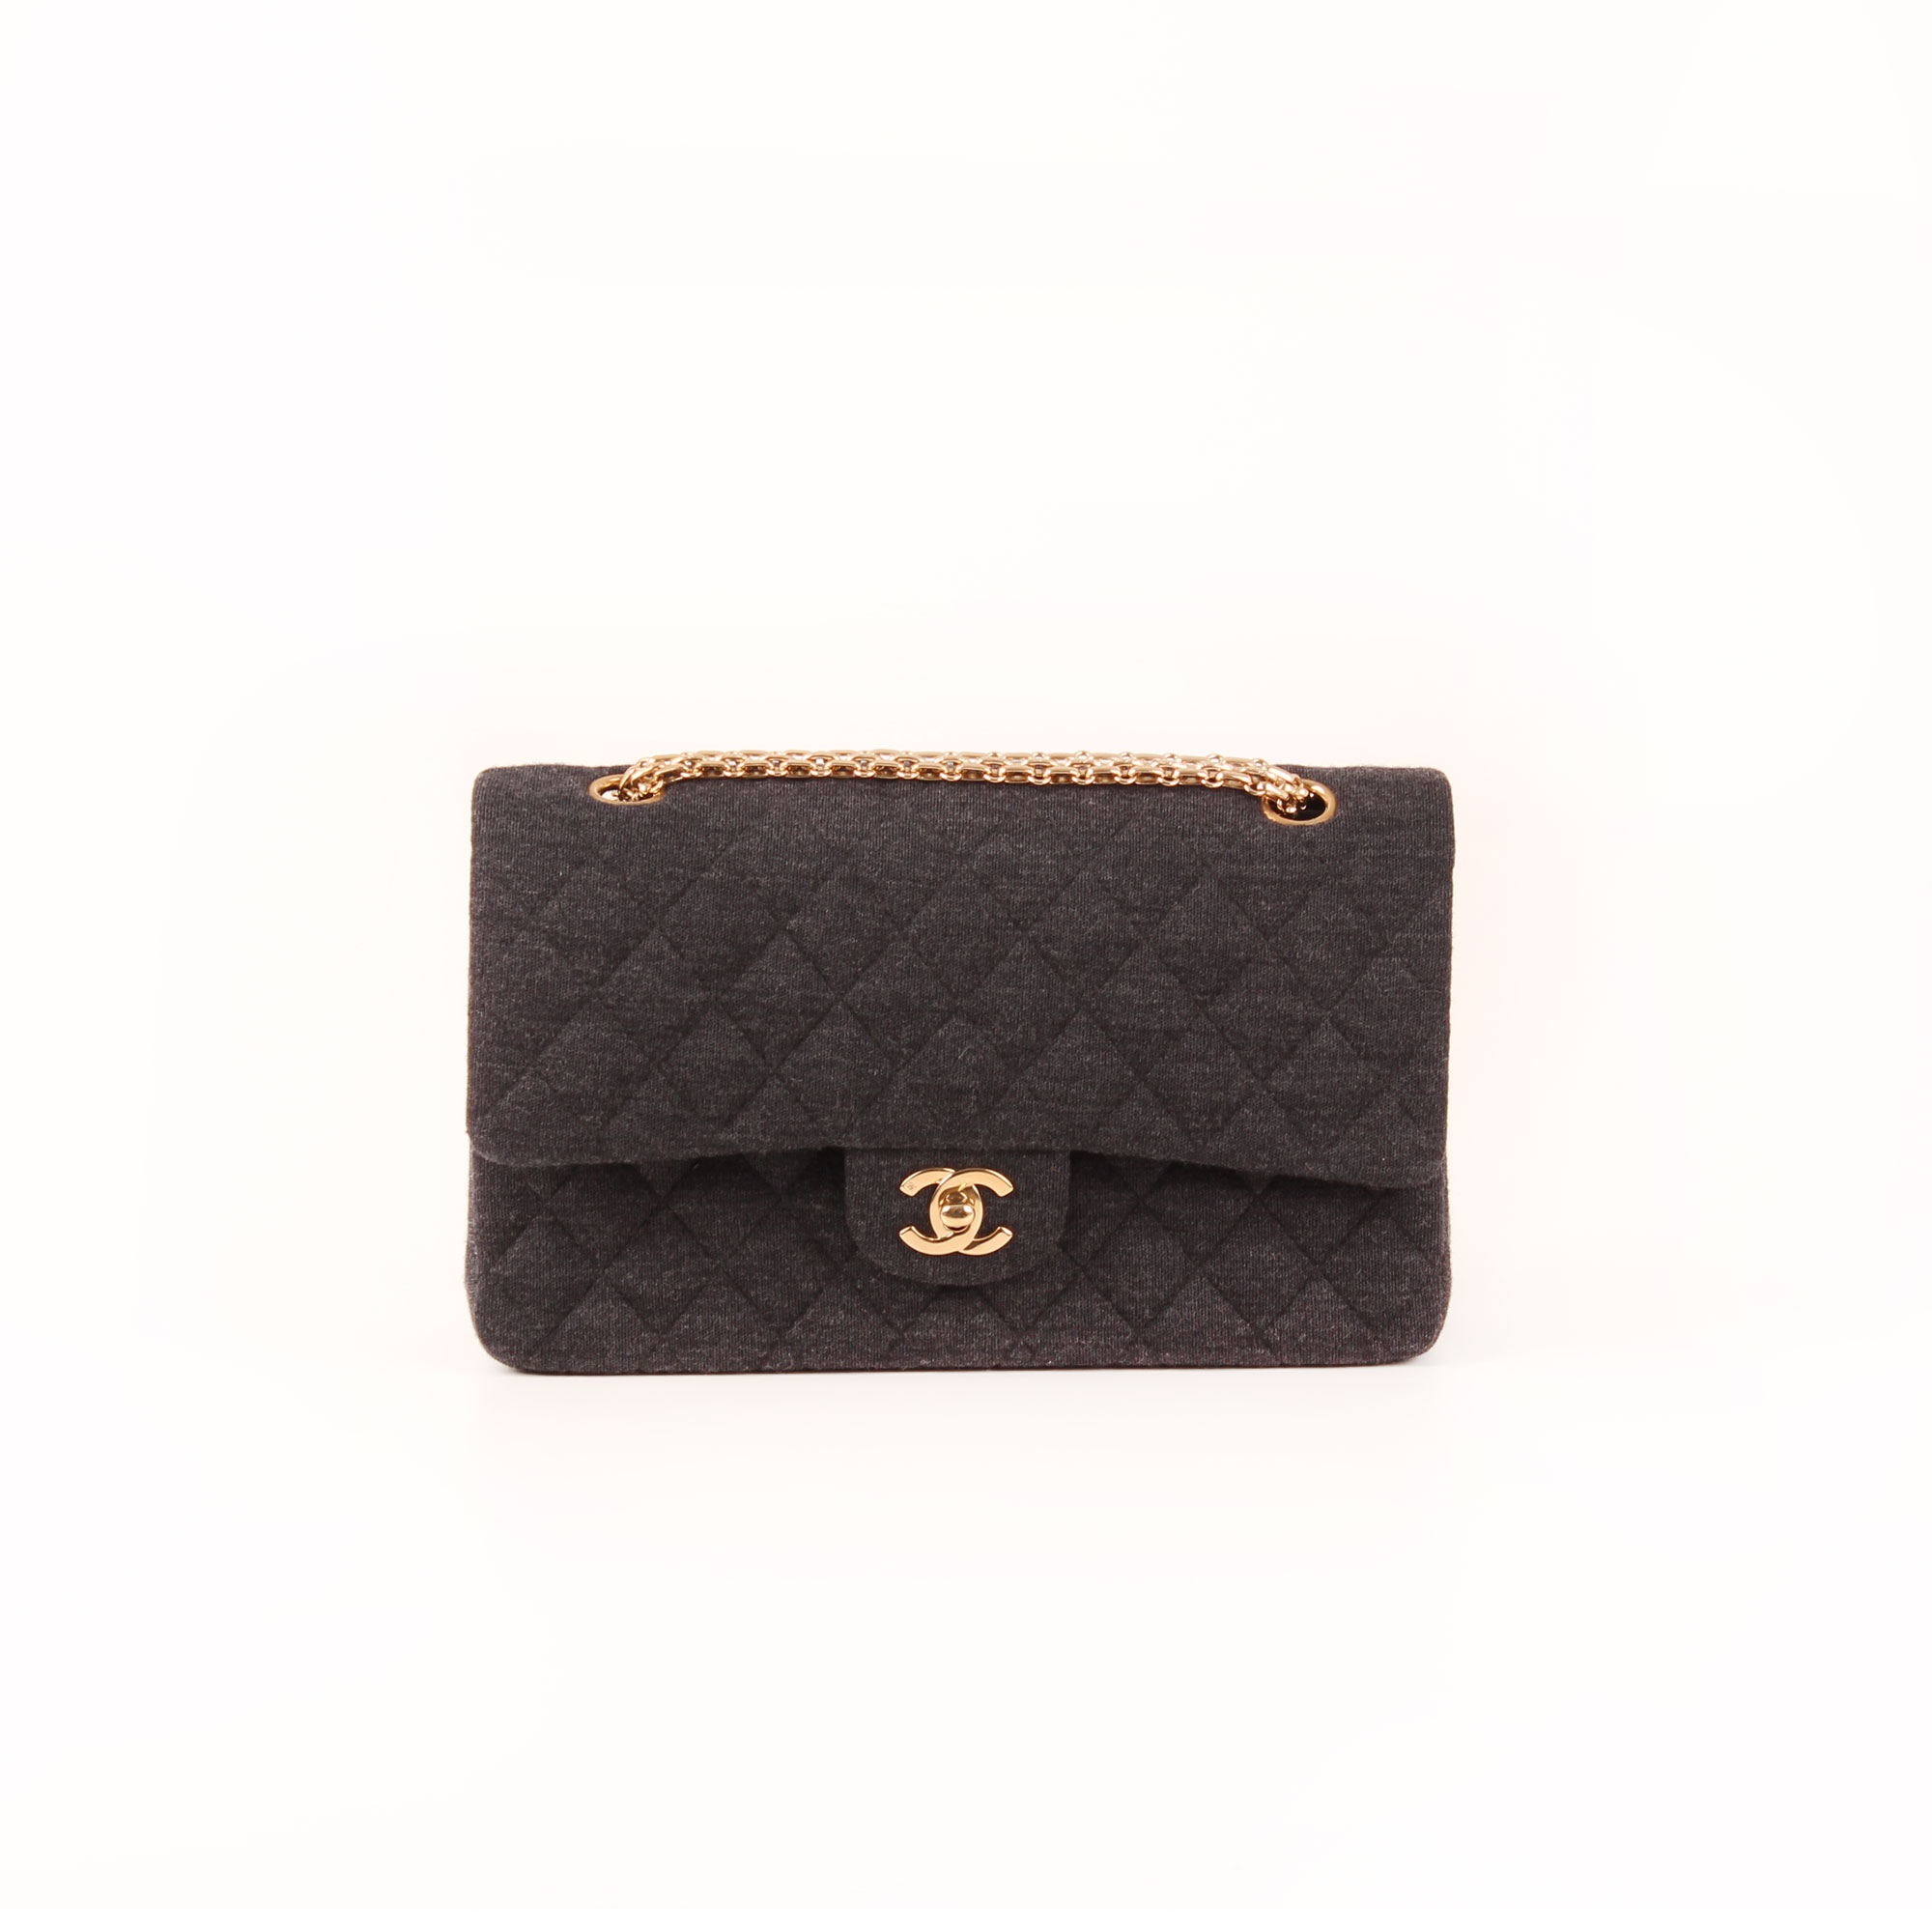 2b6e427fbf43 Chanel Quilted Jersey Timeless Double Flap I CBL Bags